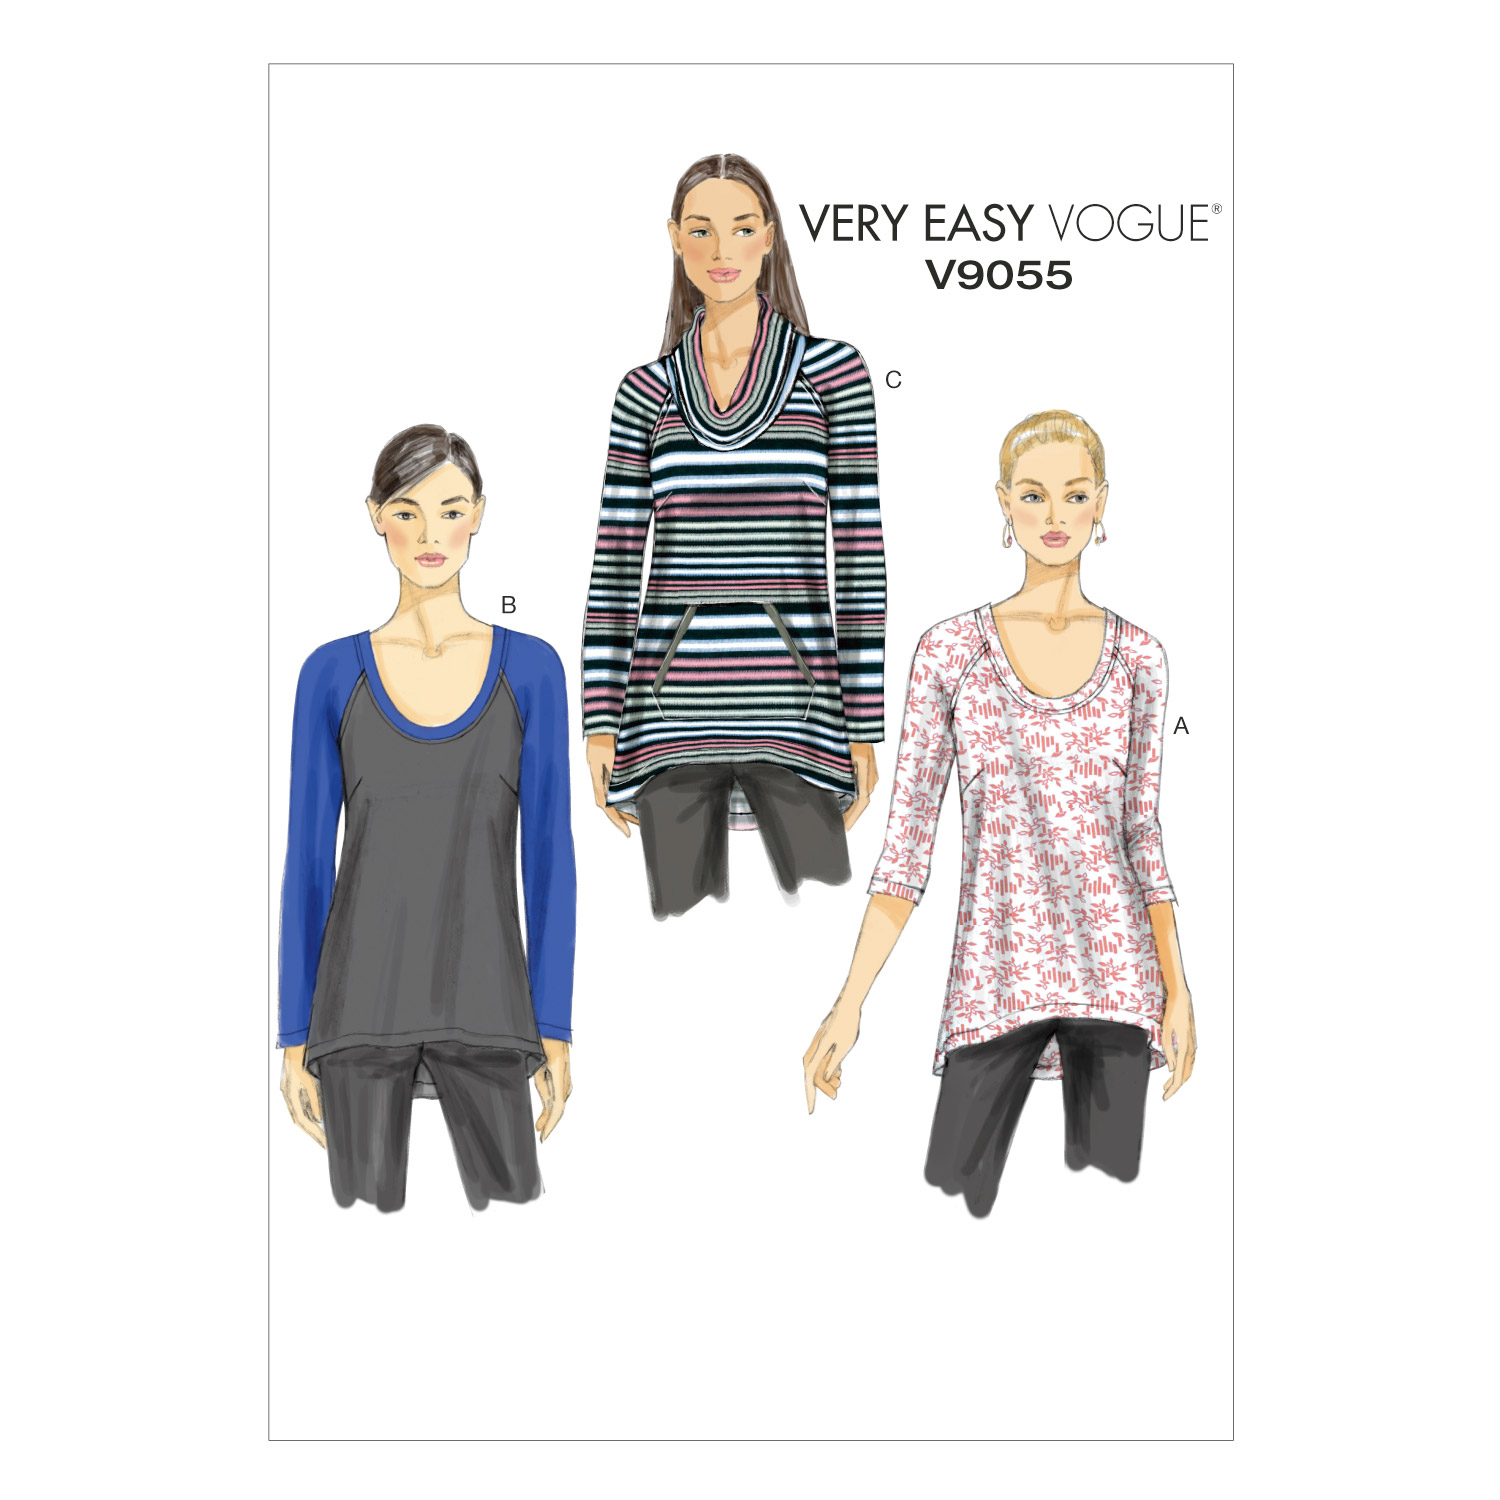 Vogue Patterns Misses Top-V9055